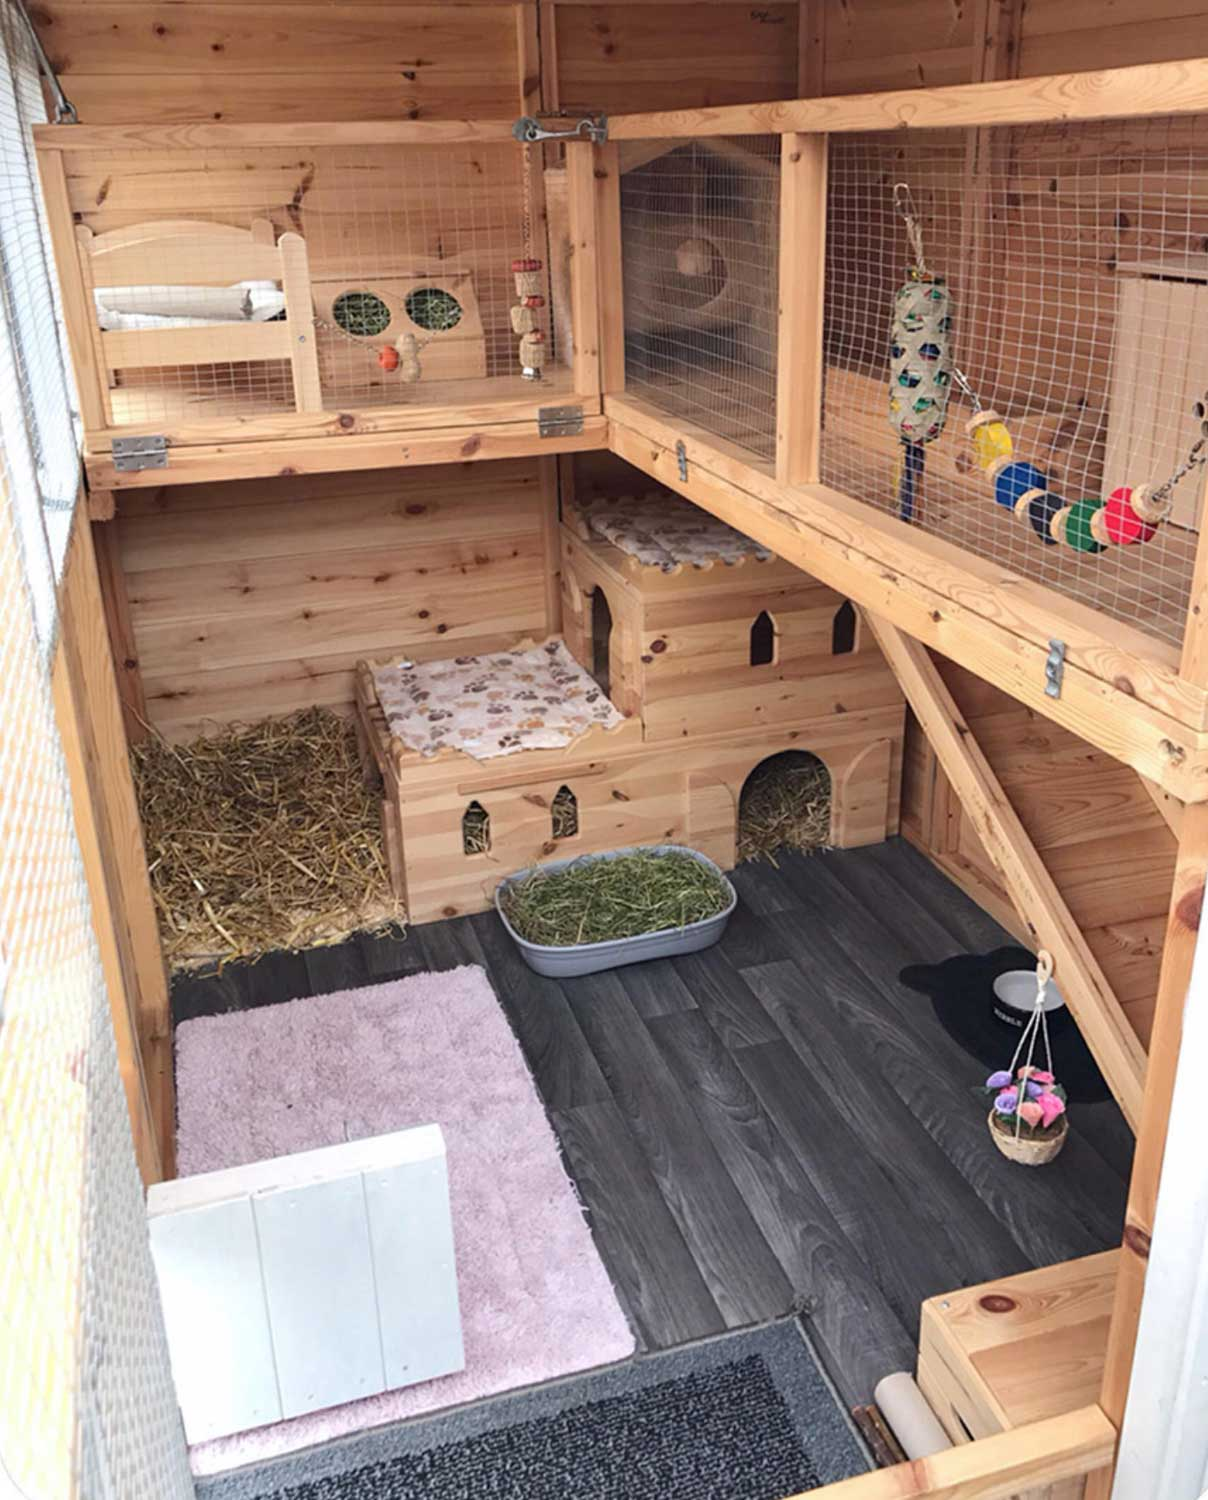 Intérieur abri pour lapin - Compte Instagram @Bunny_and_Henry_and_Moo_Moo